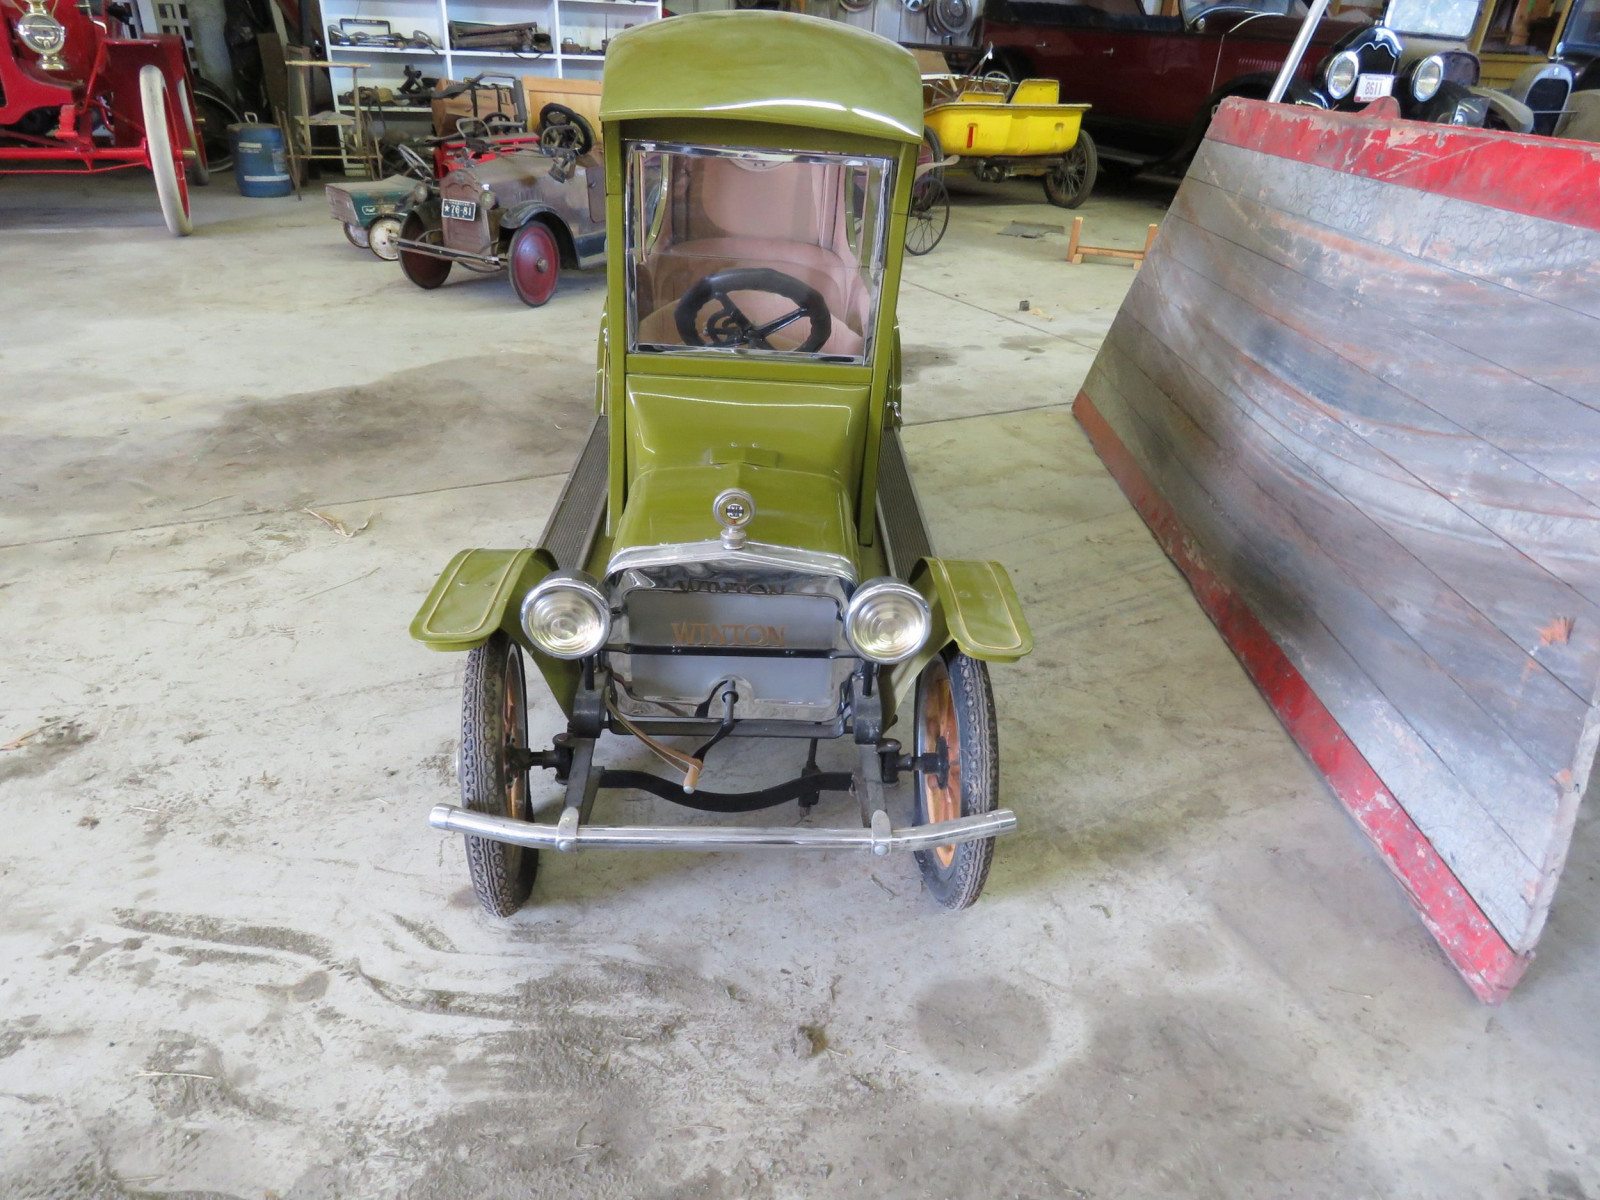 Ford Model T Center-Door Pedal Car - Image 2